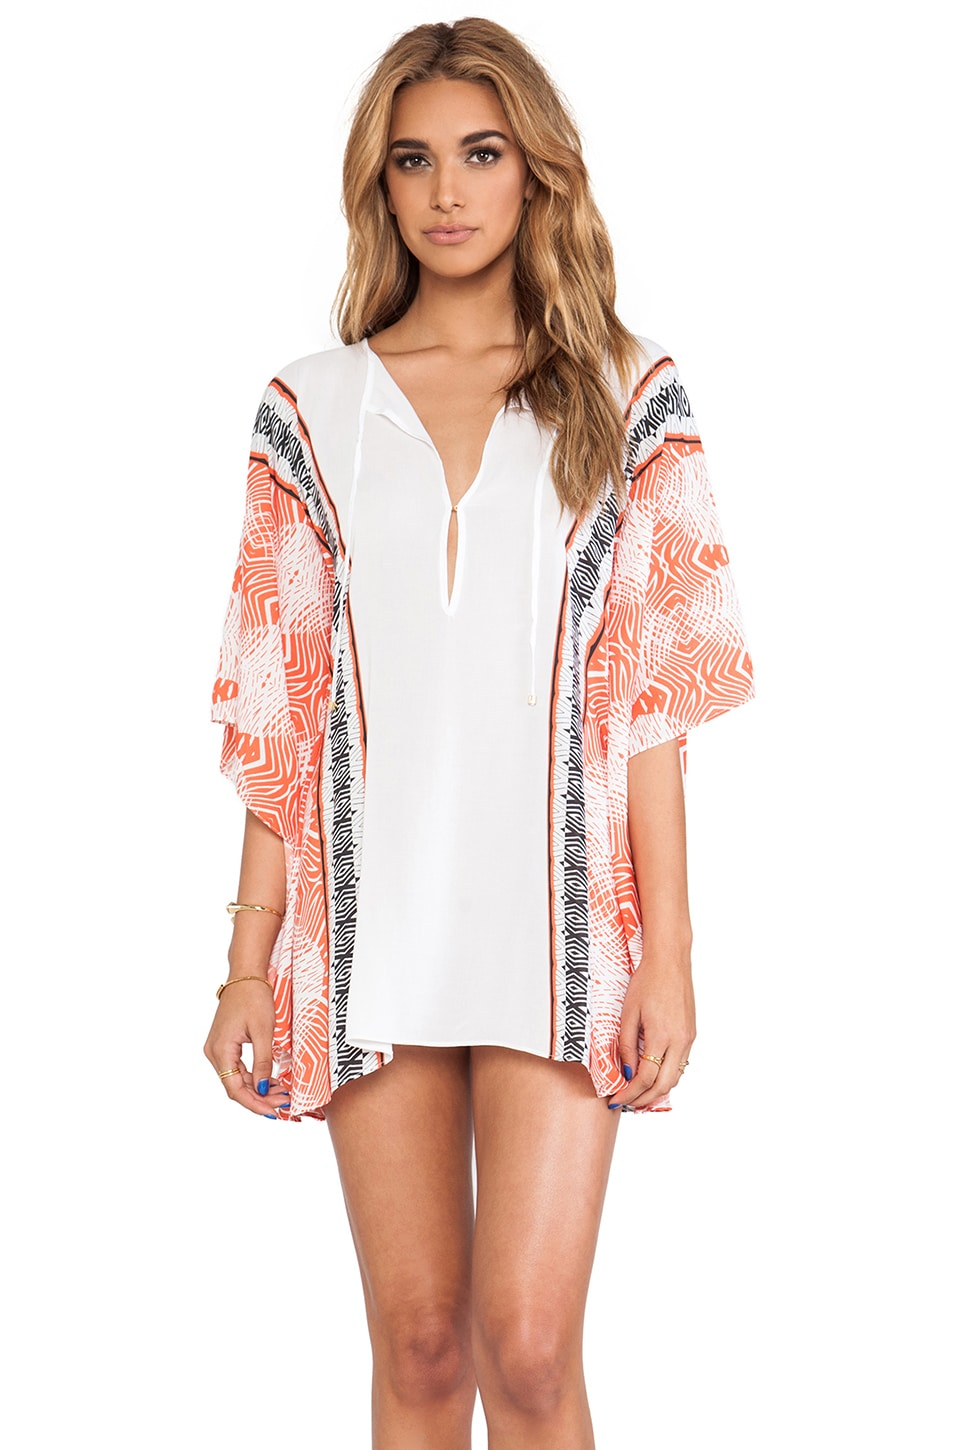 Vix Swimwear Tupi Caftan in Orange